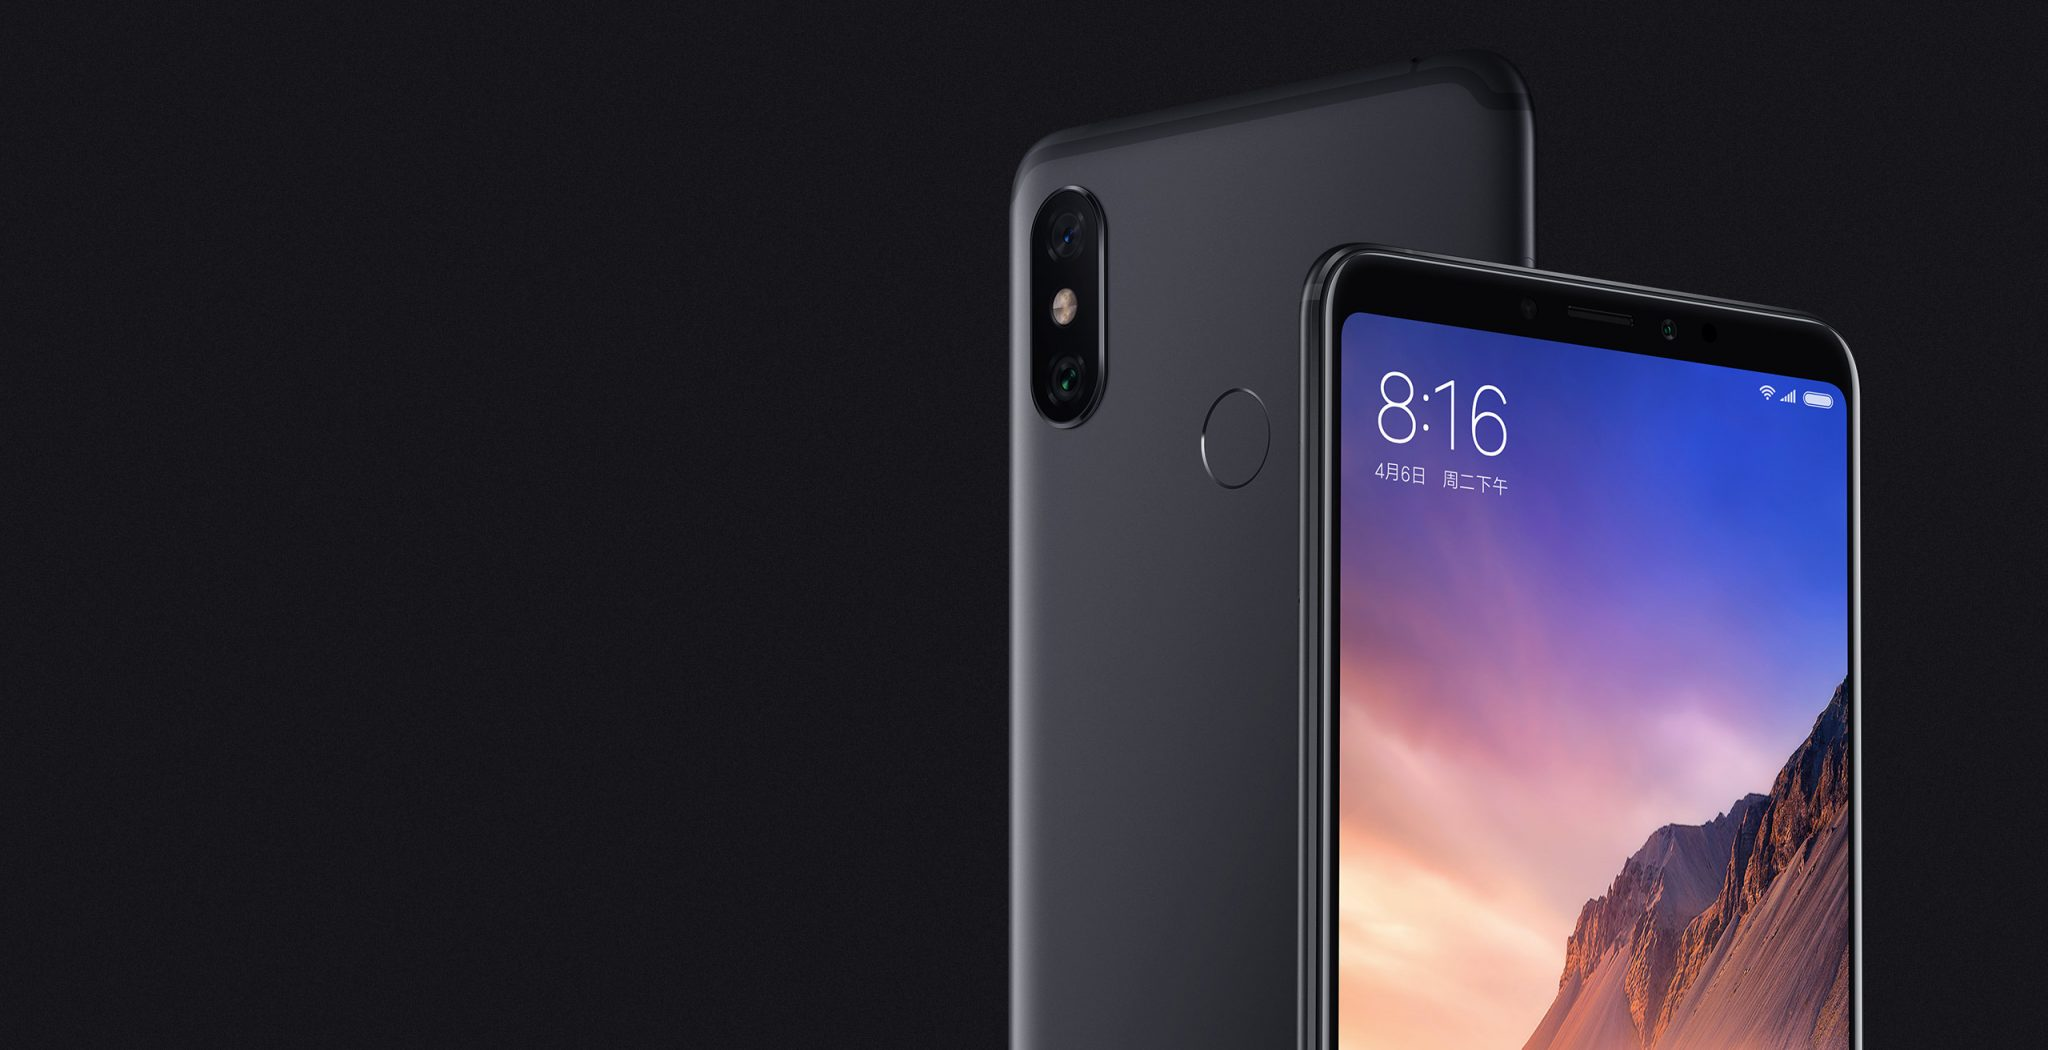 Xiaomi Mi Max 3 is launching in India soon, reveals the company 1